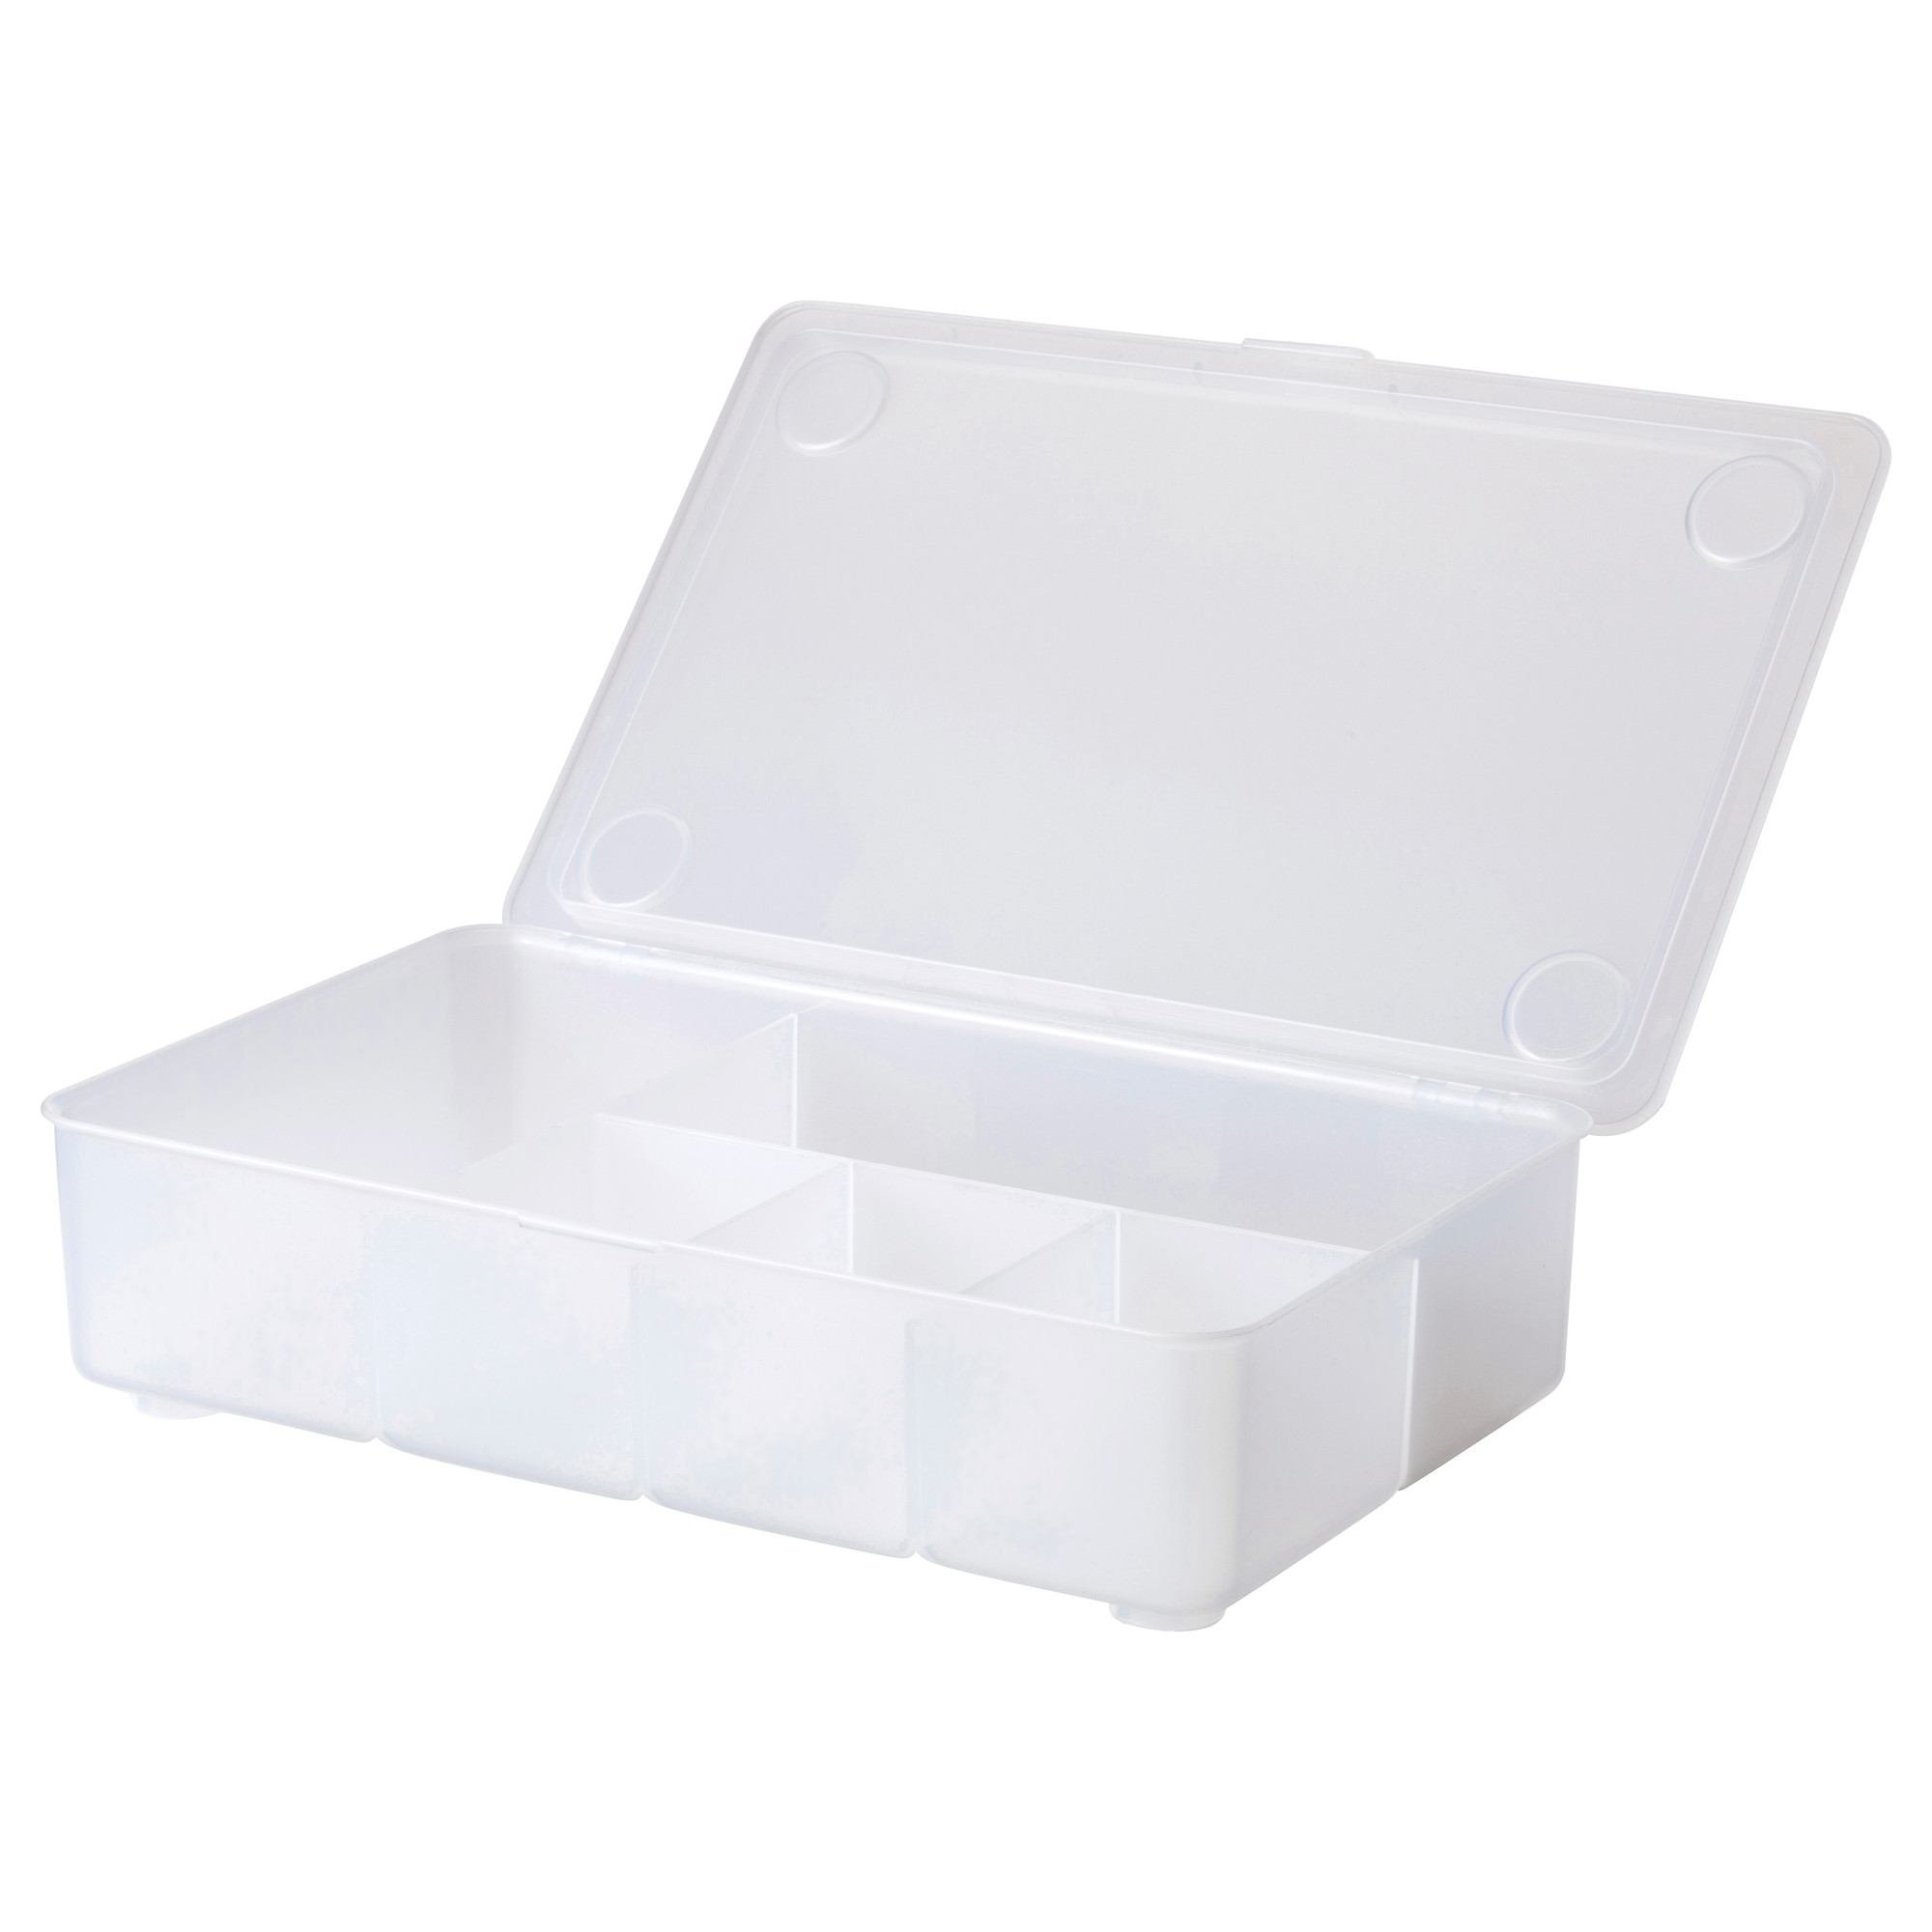 Glis Box With Lid Transpa Ikea Hong Kong